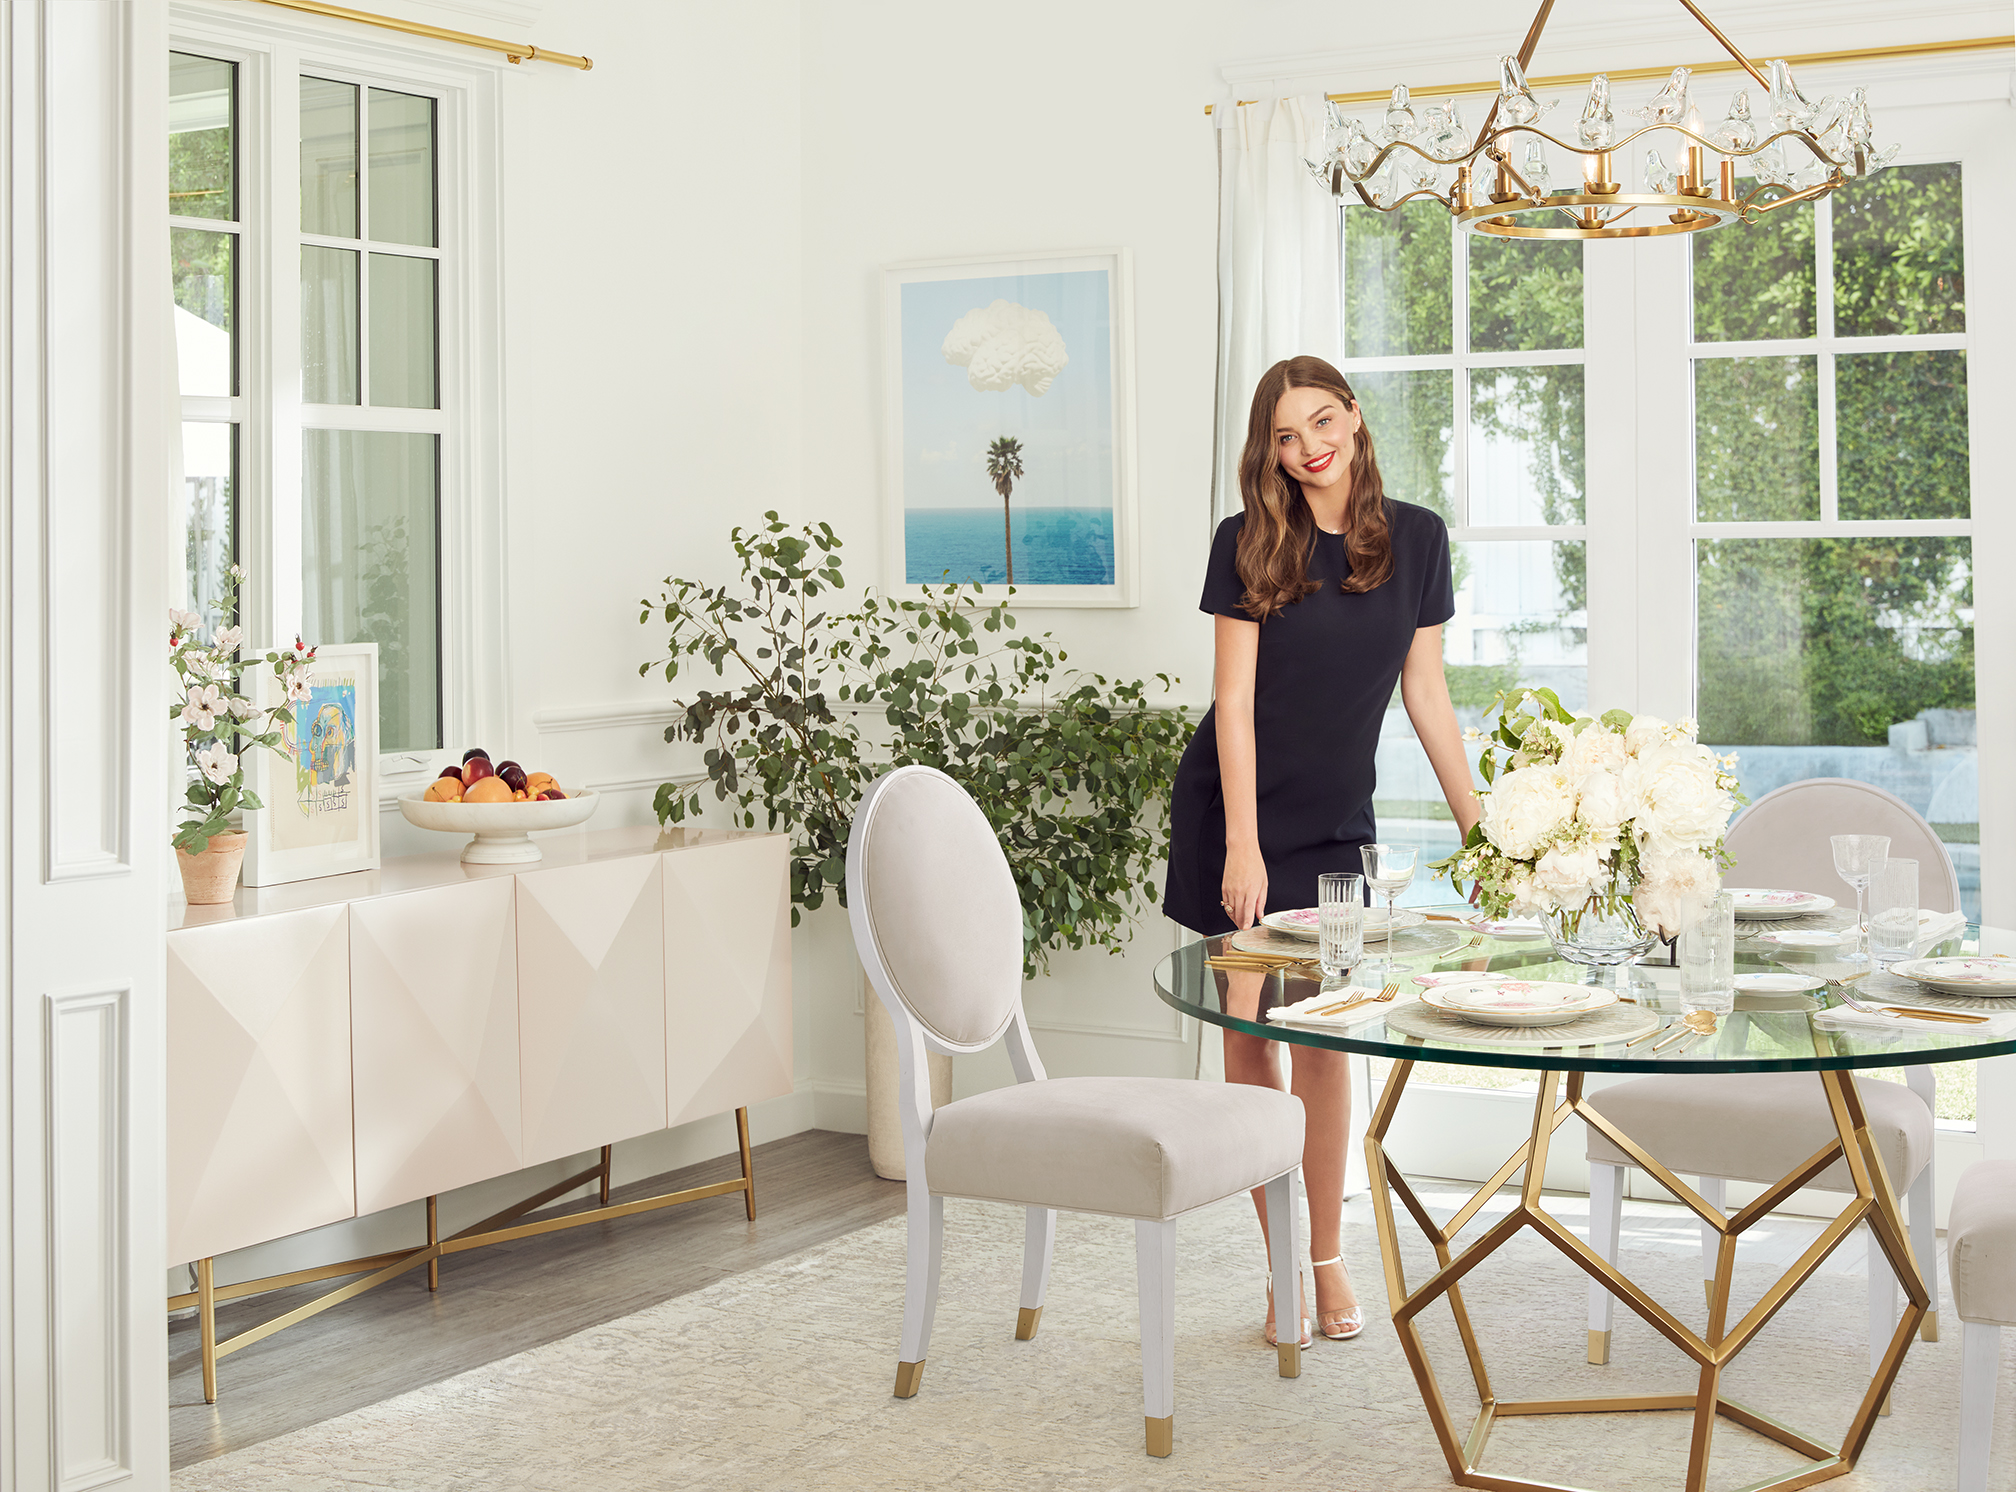 Image of a dining table from the Miranda Kerr Home collection